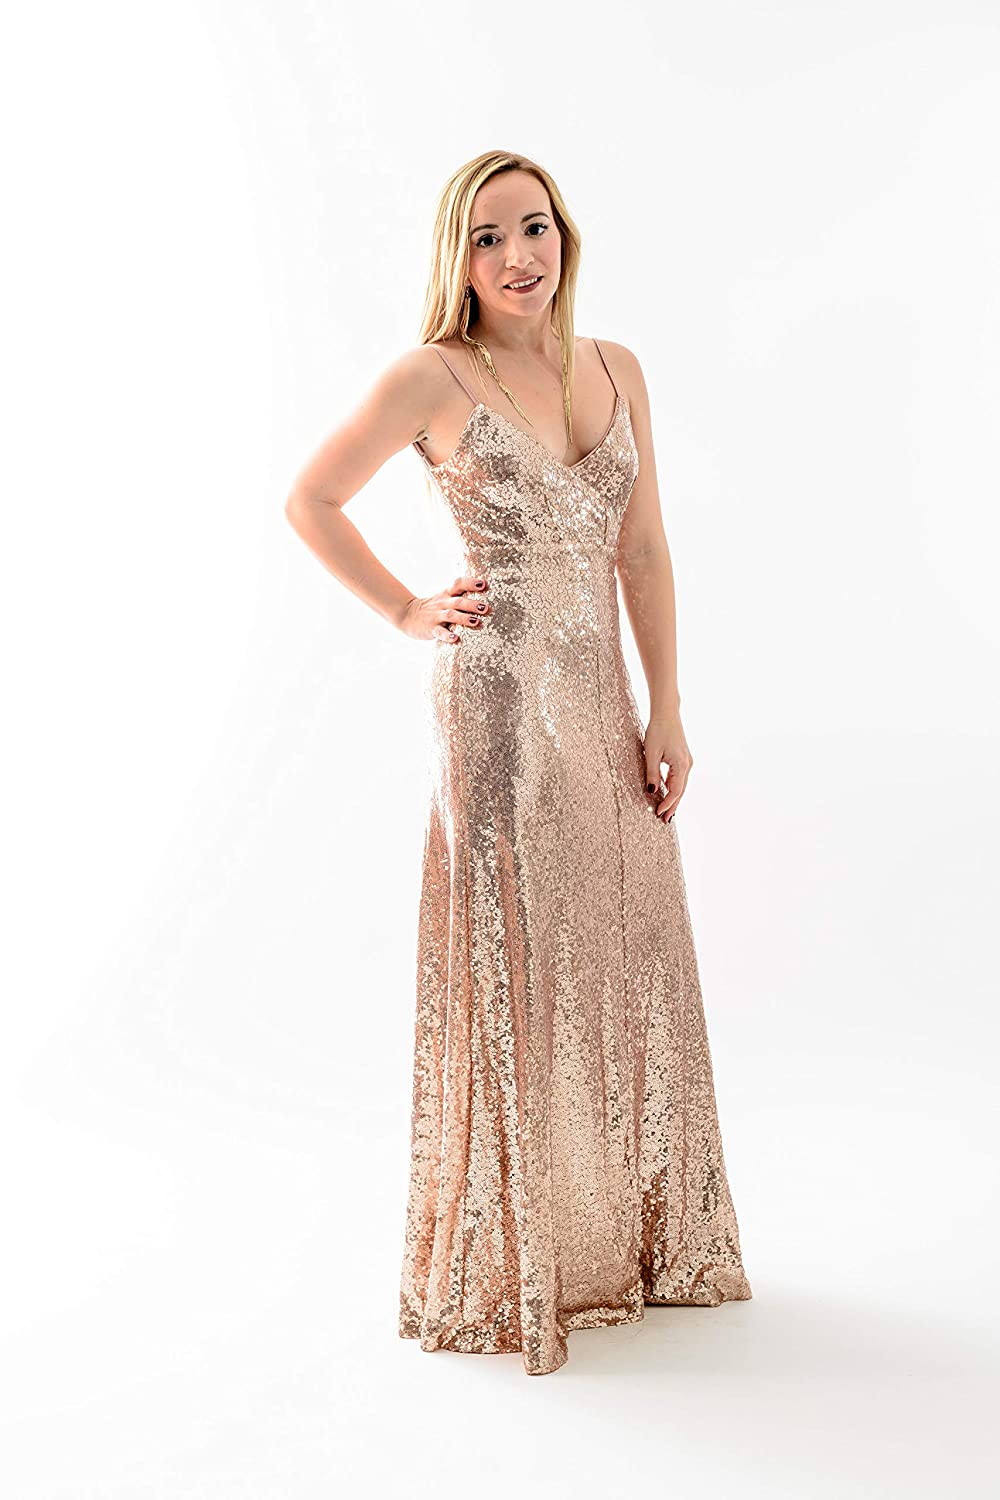 c475026e Amazon.com: Bsparklefashion Women's Sexy Deep V Neck Sequin Glitter Maxi  Sleeveless Party Dress Empire Elegant Line Club (L) Champagne: Clothing